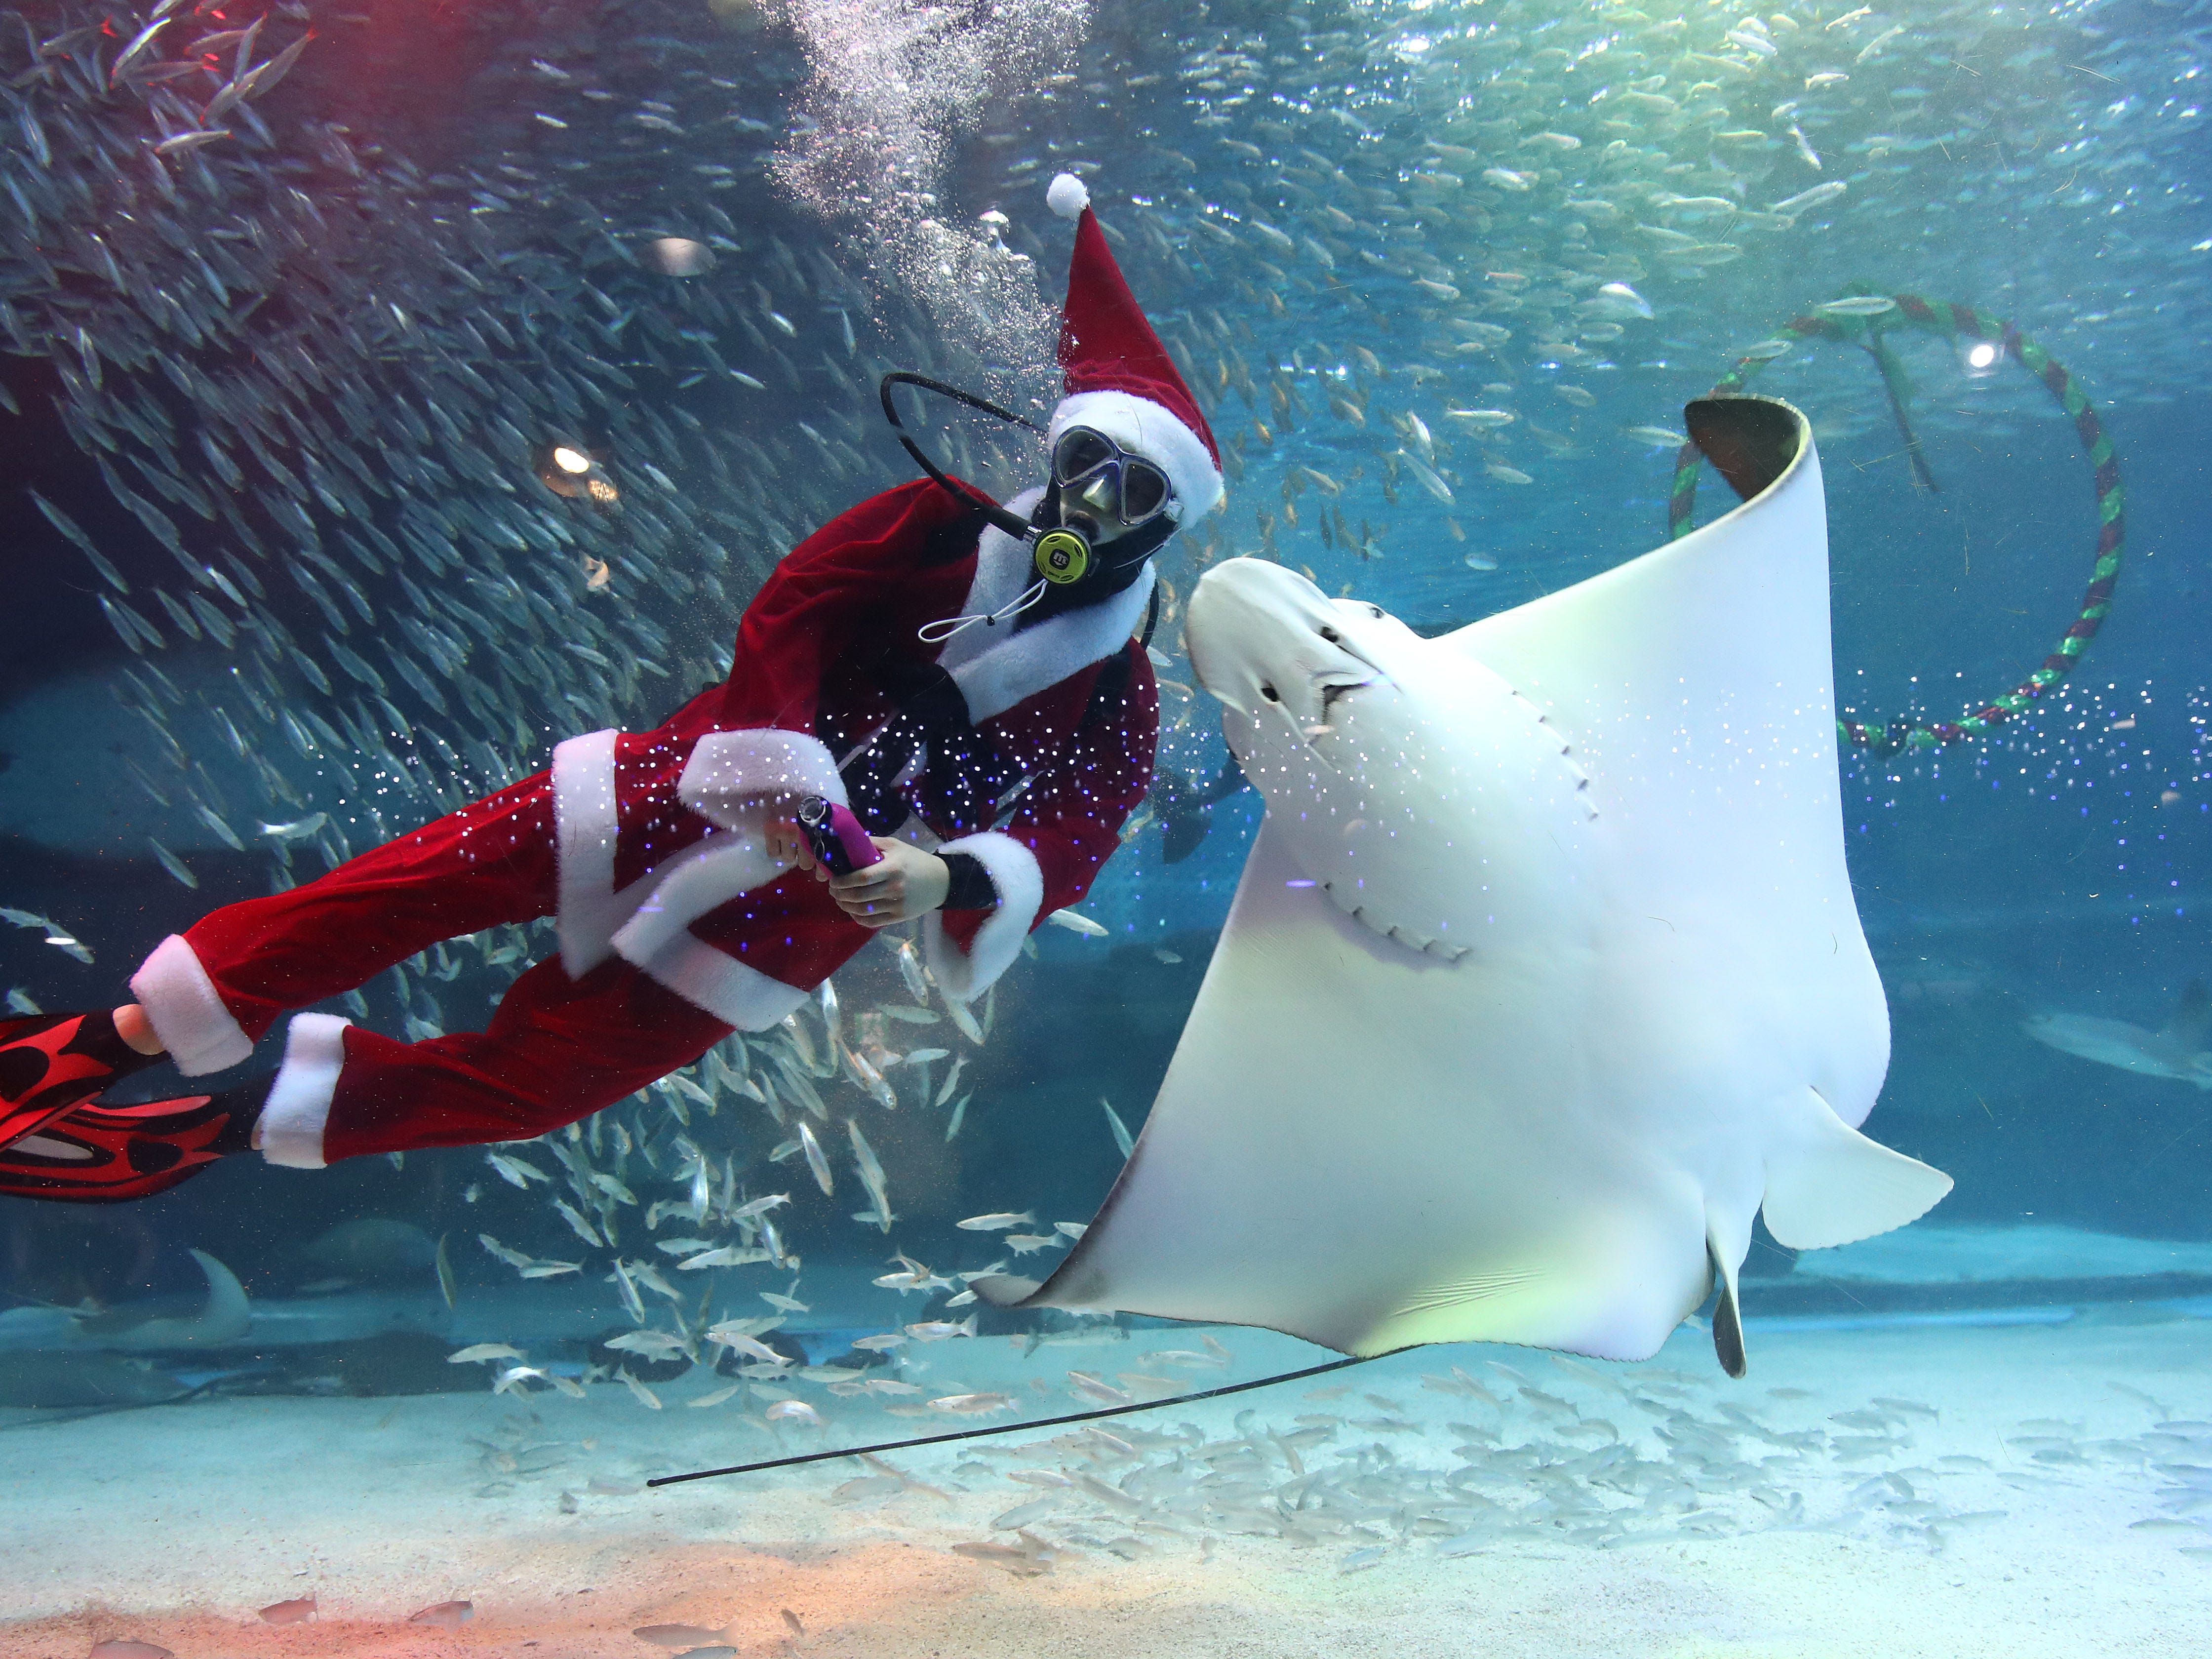 A diver wearing a Santa Claus costume swims with fish at COEX Aquarium on December 7, 2018, in Seoul, South Korea. Christmas has become increasingly popular in South Korea, the only East Asian country to recognize Christmas as a national holiday.